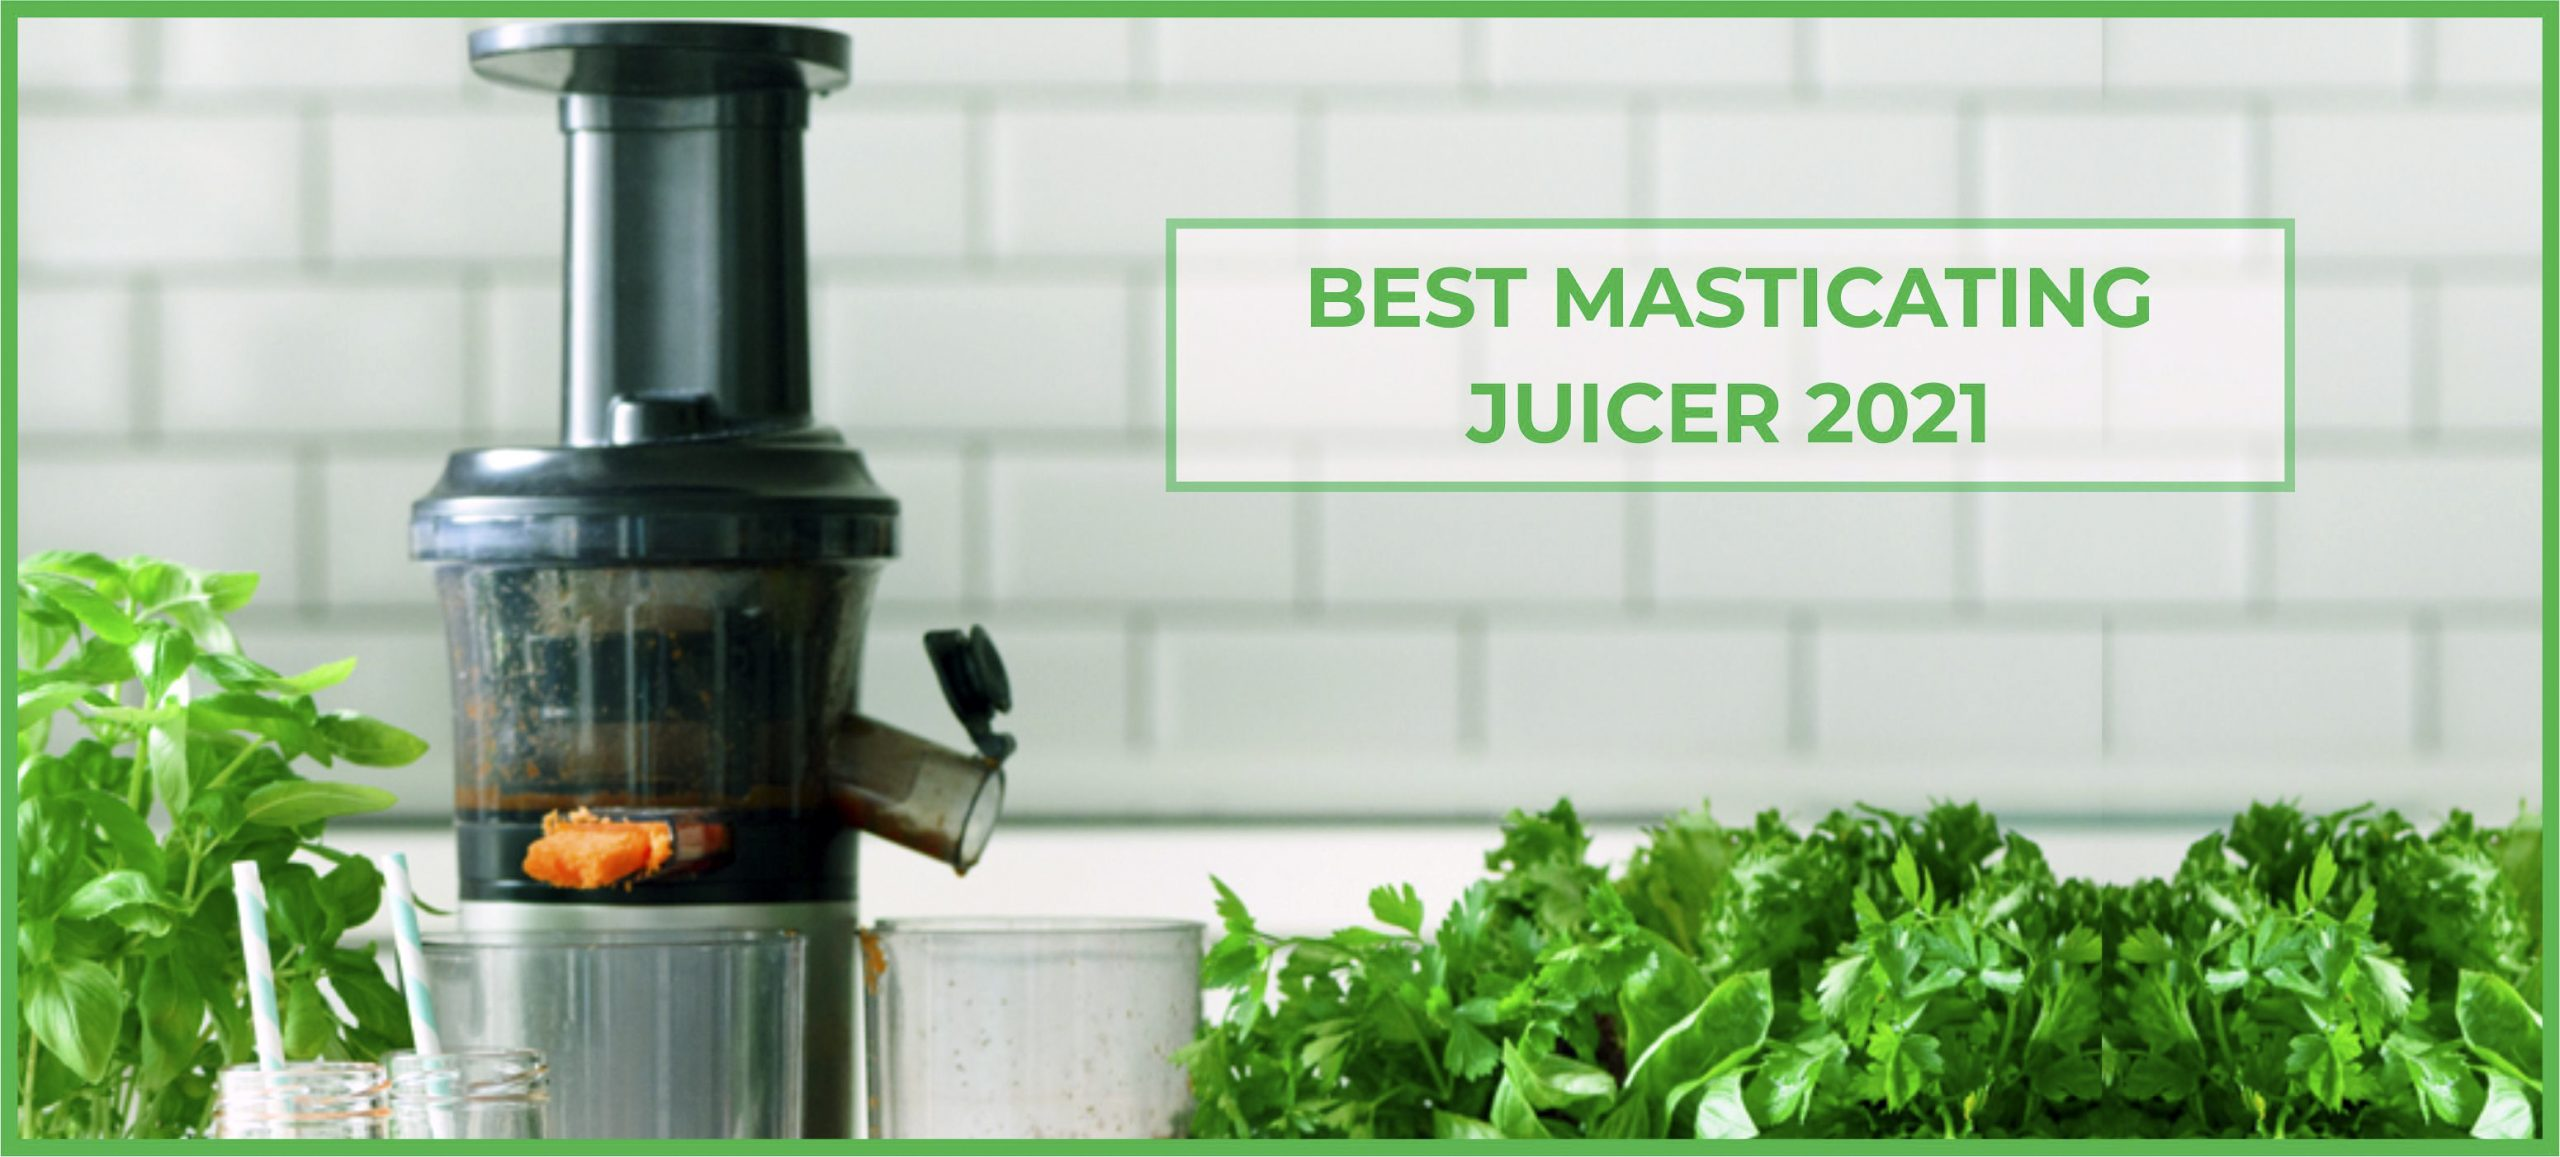 Best Masticating Juicers 2021 - Top Picks, Reviews, and Buyer Guide